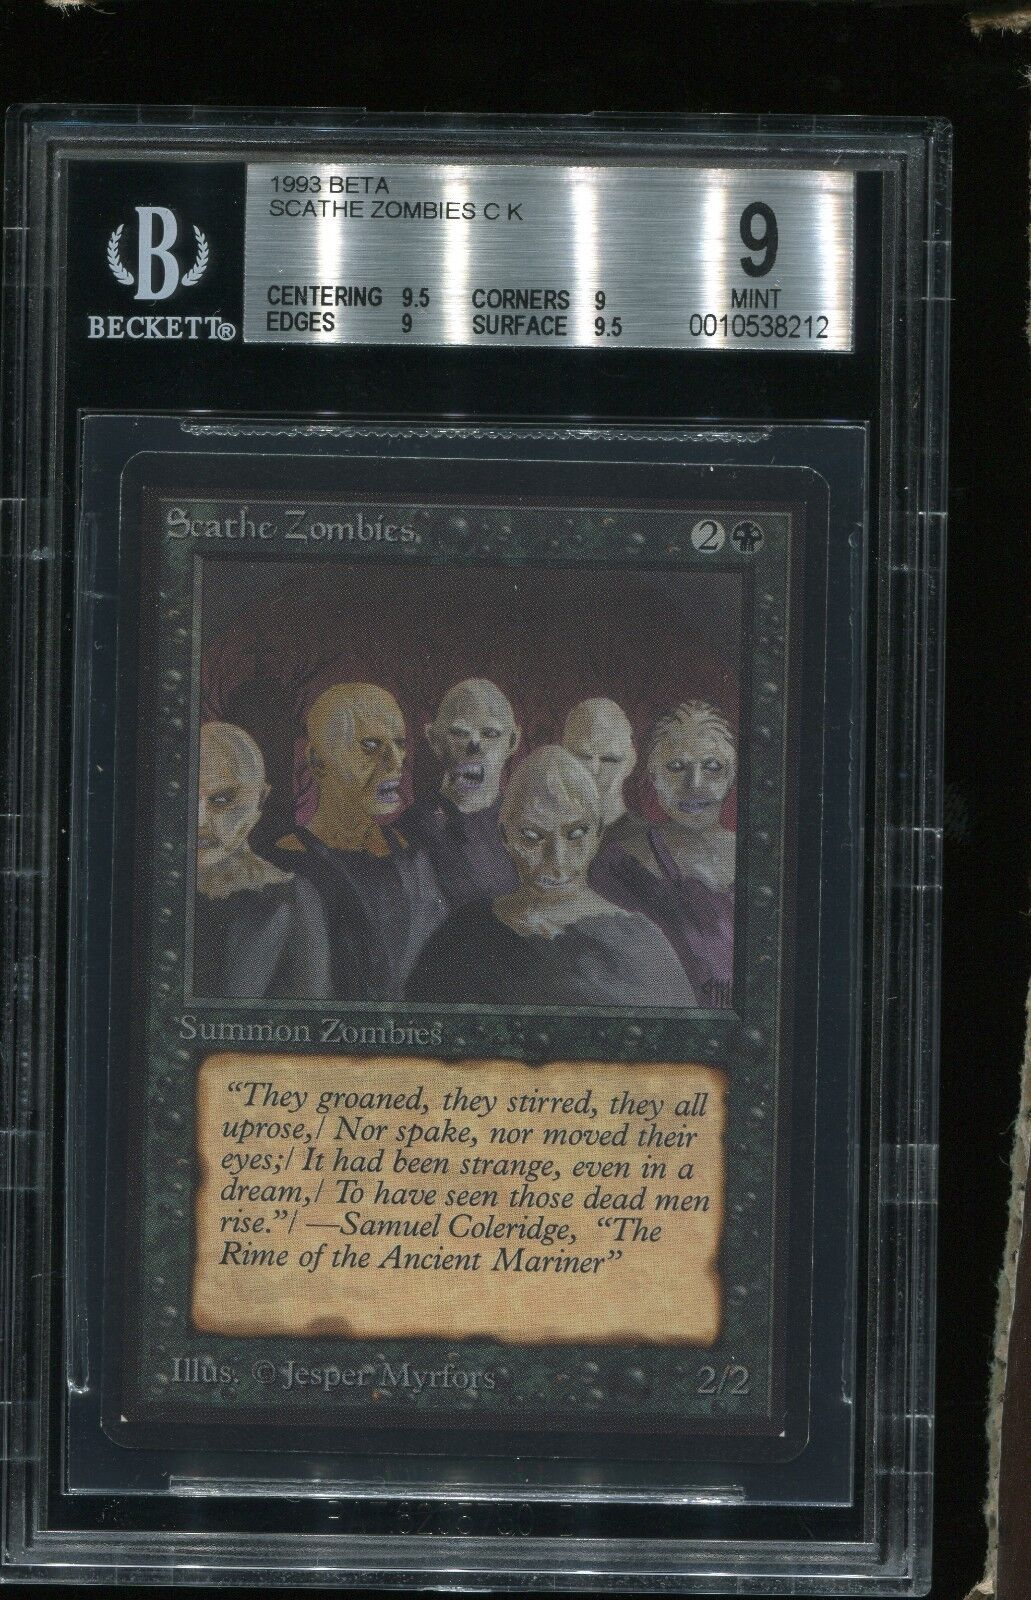 Bgs unter 9 beta scathe zombies mtg old - school - magie siehe scans